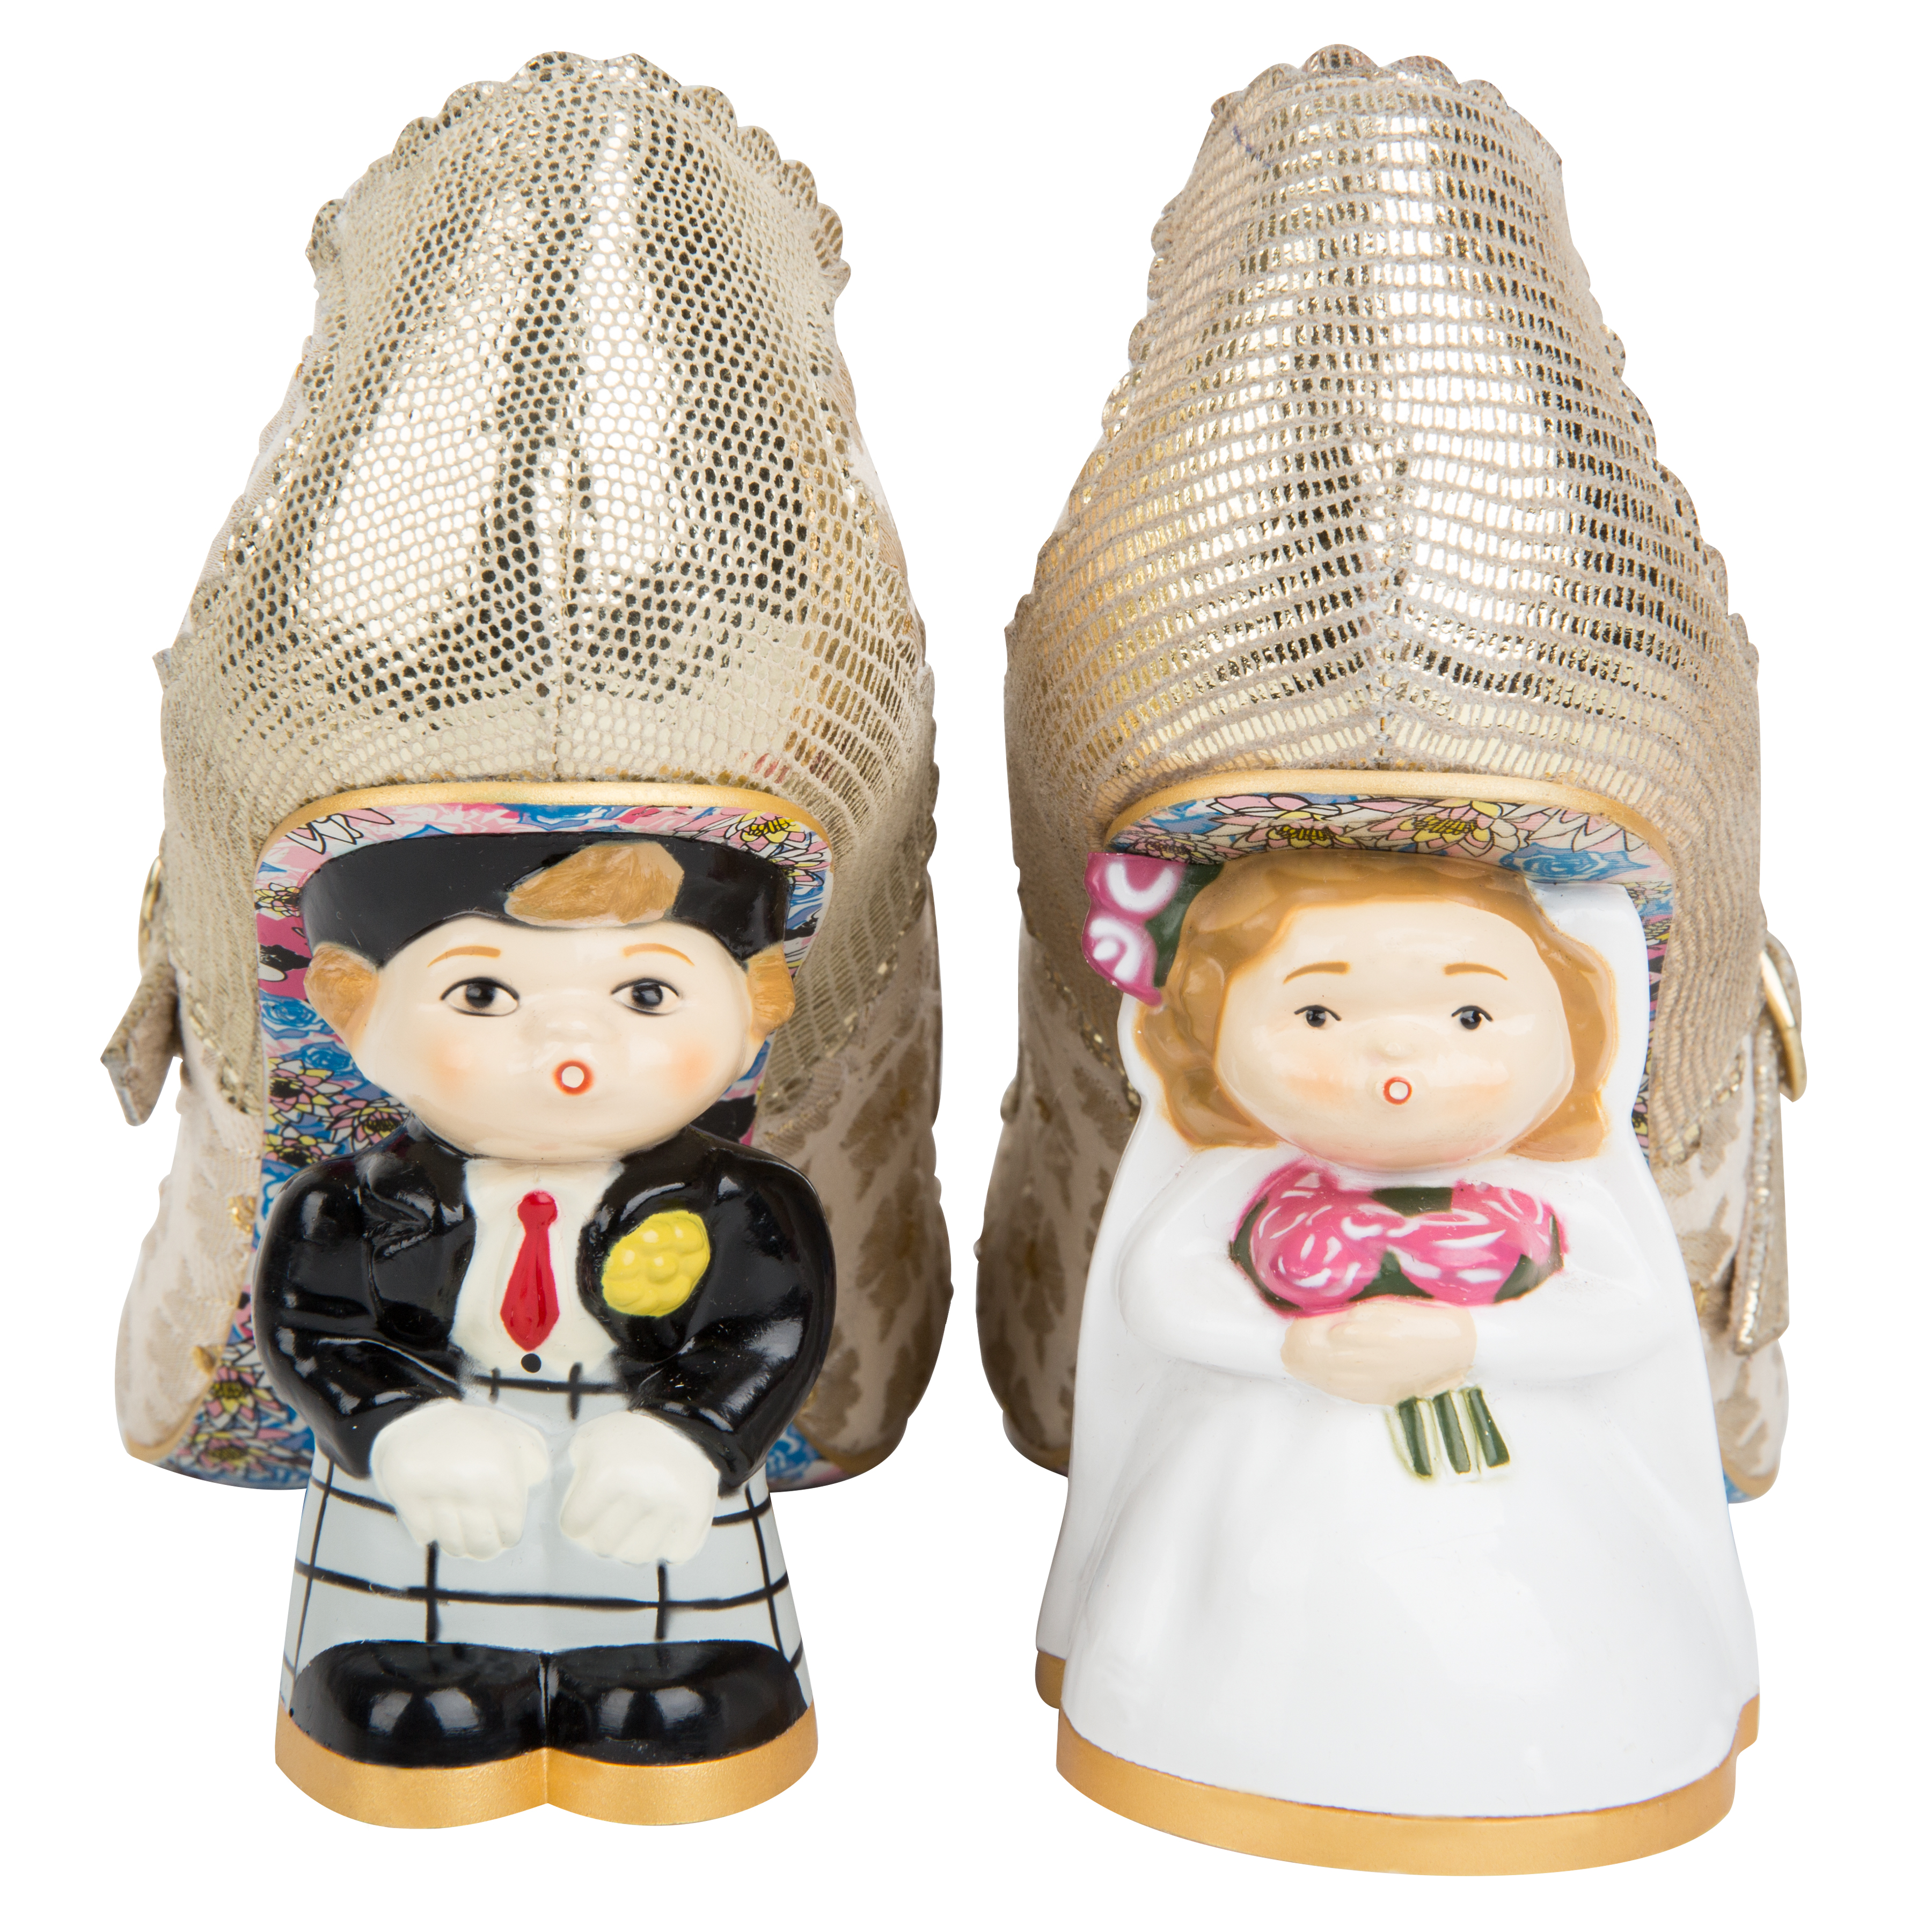 Quirky Wedding Shoes - Show some character | CHWV